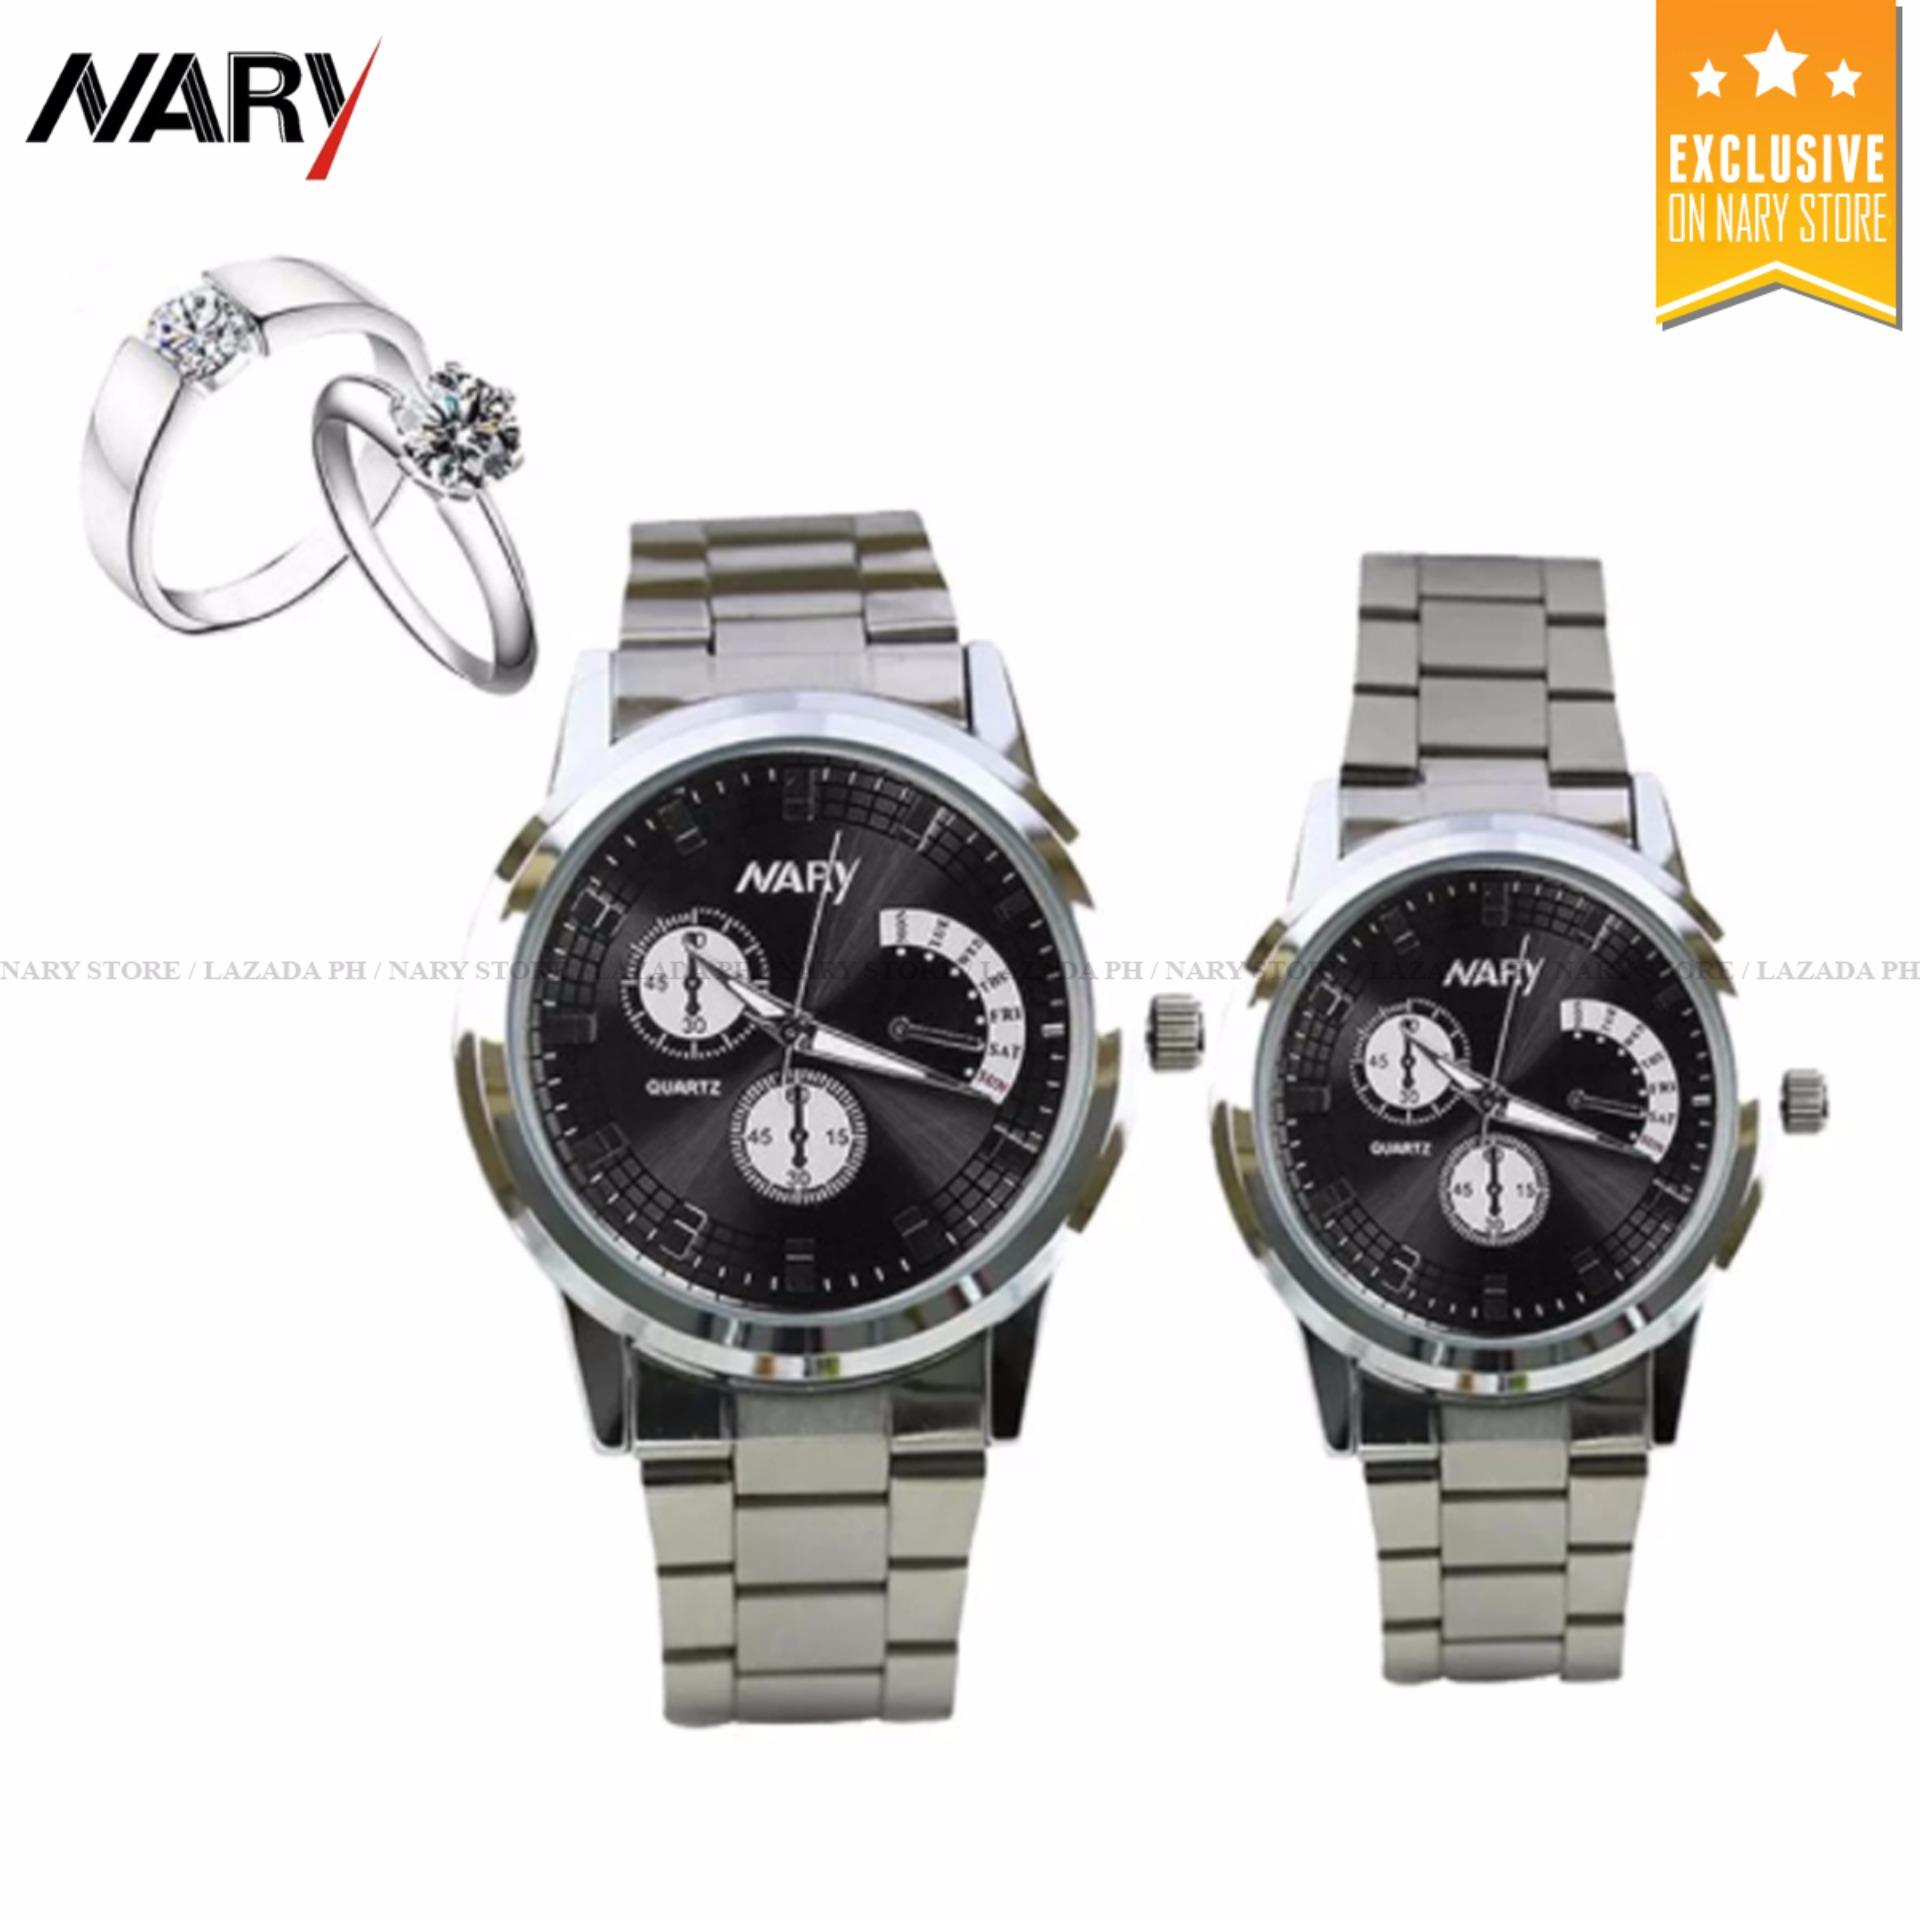 Home; Jewellery; Watches. NARY 6017 Couple's Fashion Stainless Steel Strap Wristwatch (Silver/Black) with Free E013